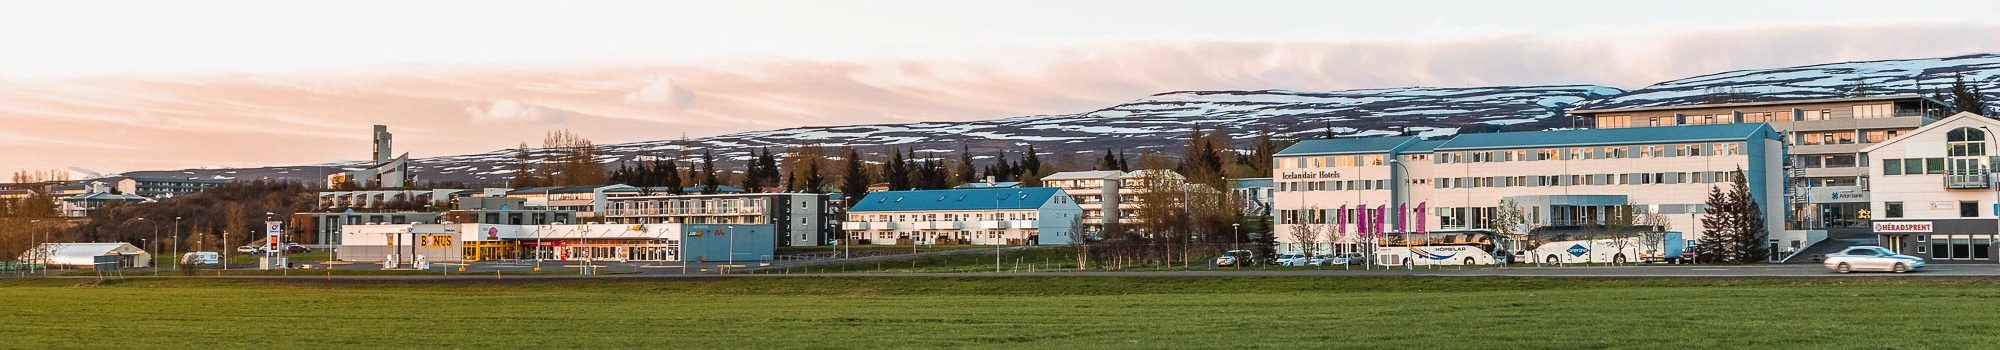 Egilsstadir city in Iceland